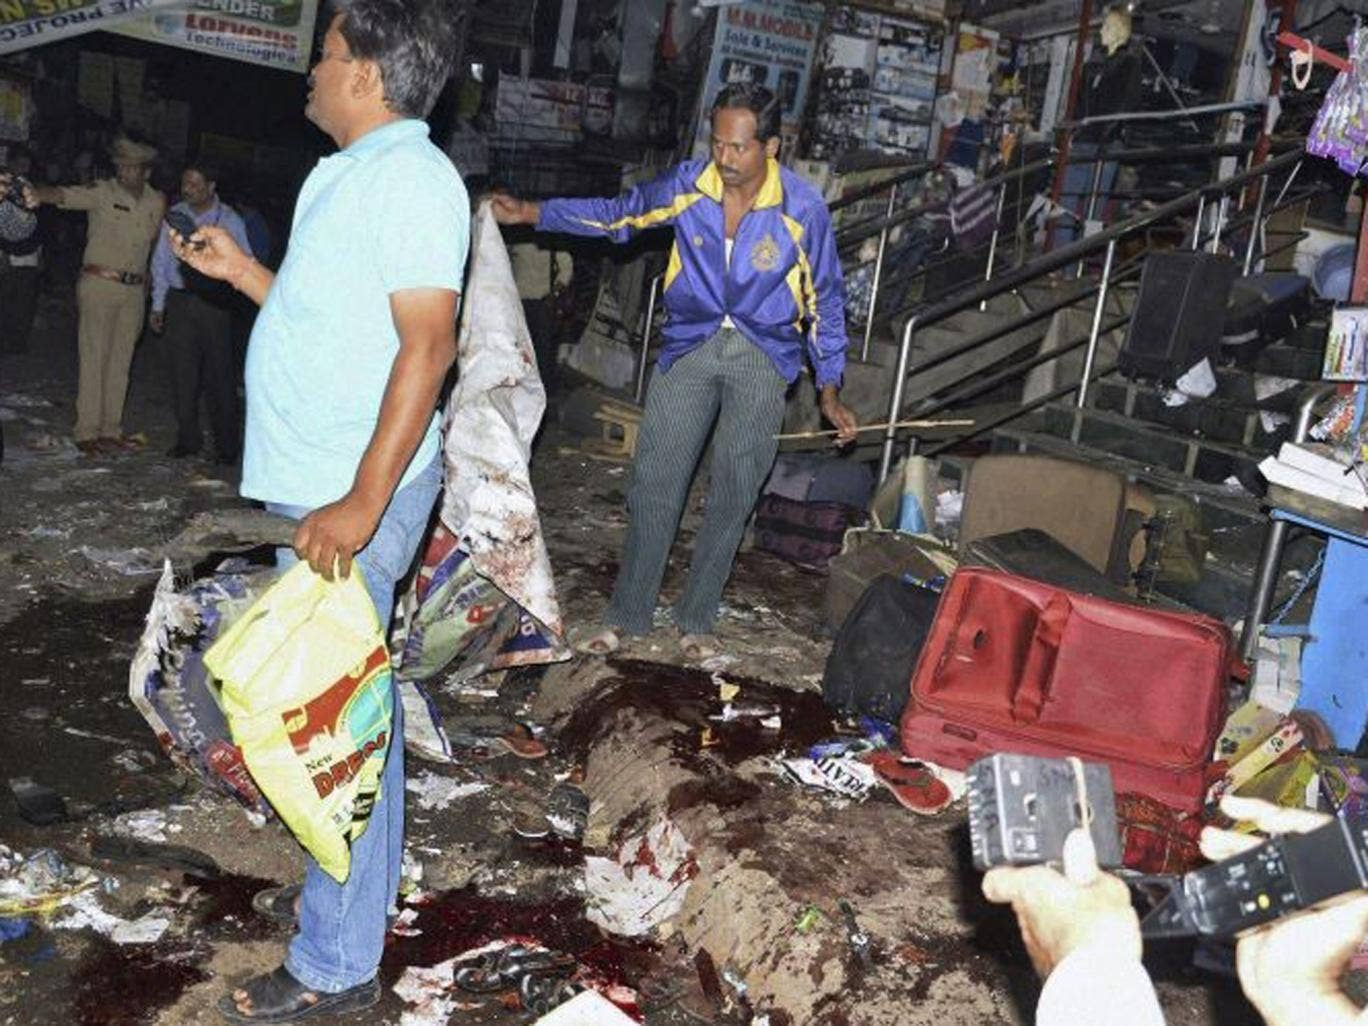 The scene of the blast at Dilsukhnagar in Hyderabad